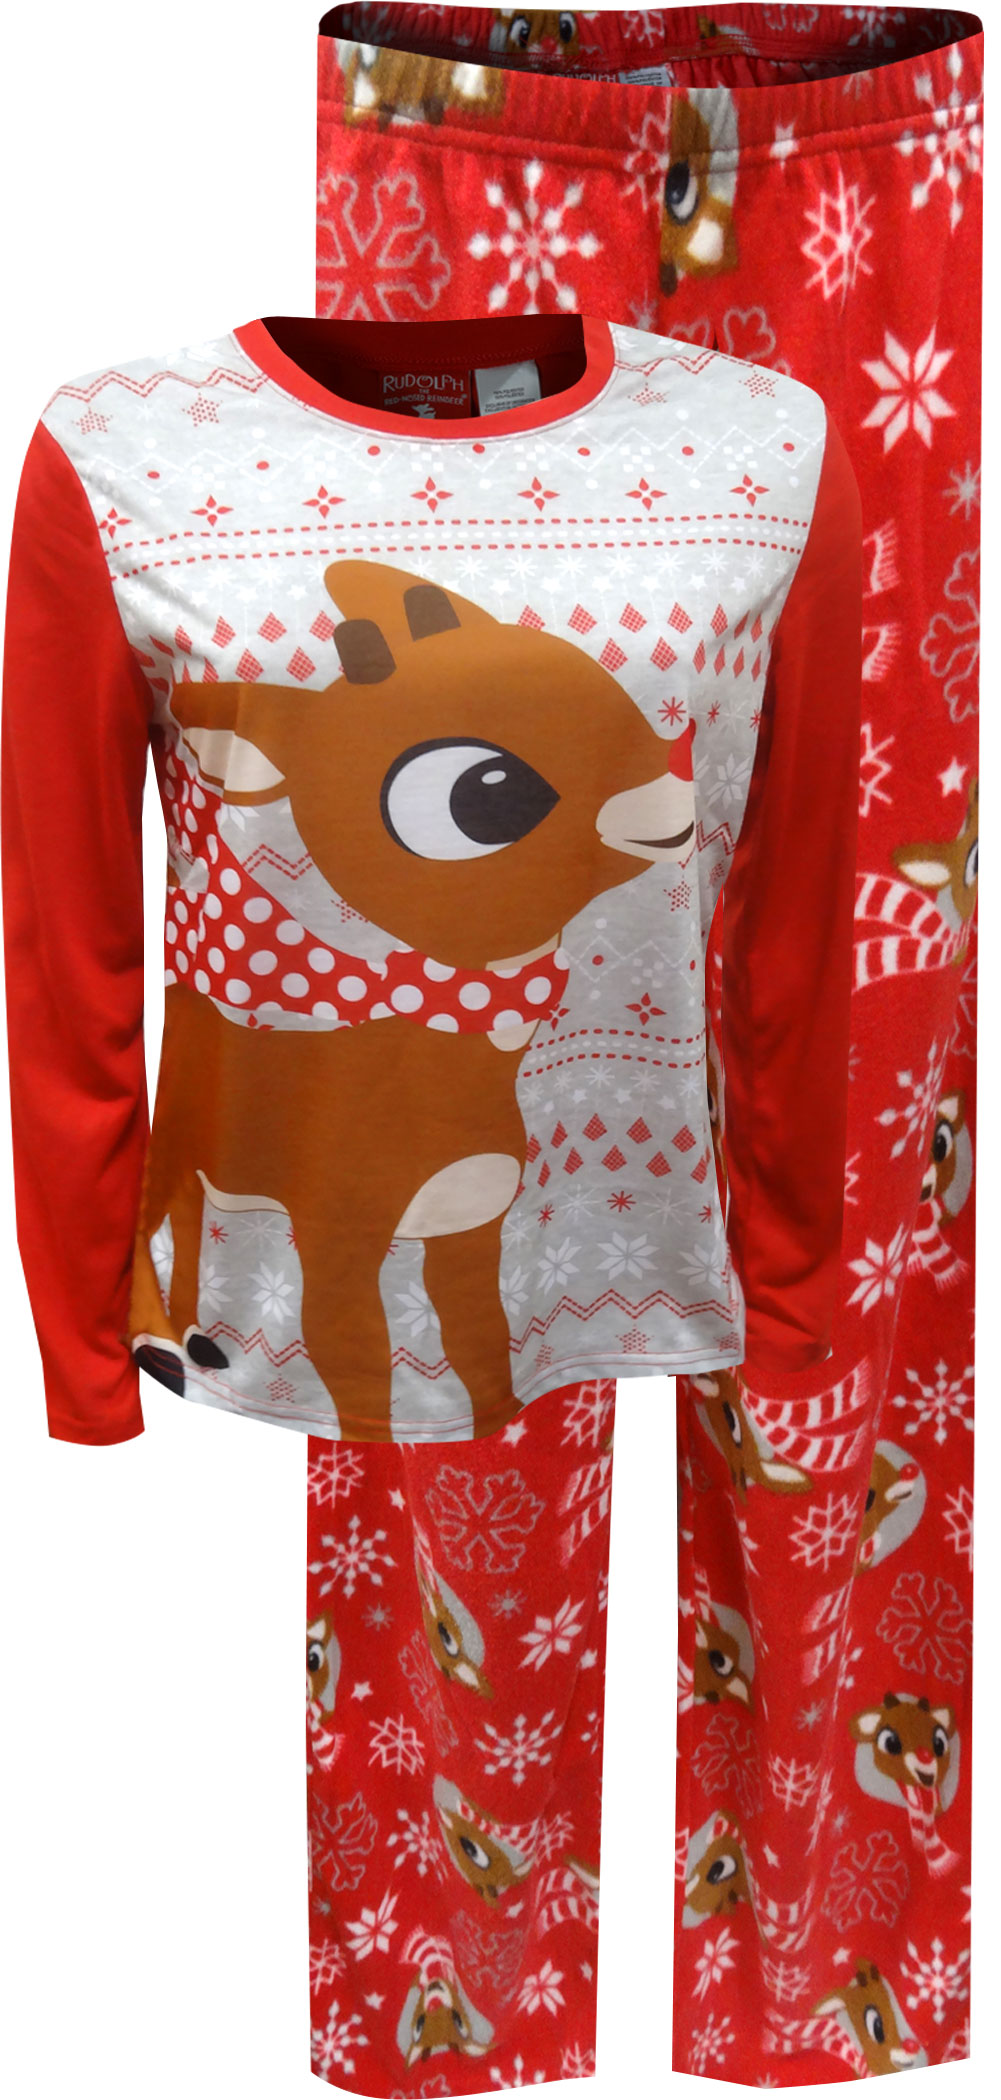 Image of Cute Rudolph The Red-Nosed Reindeer Pajama Set for Women